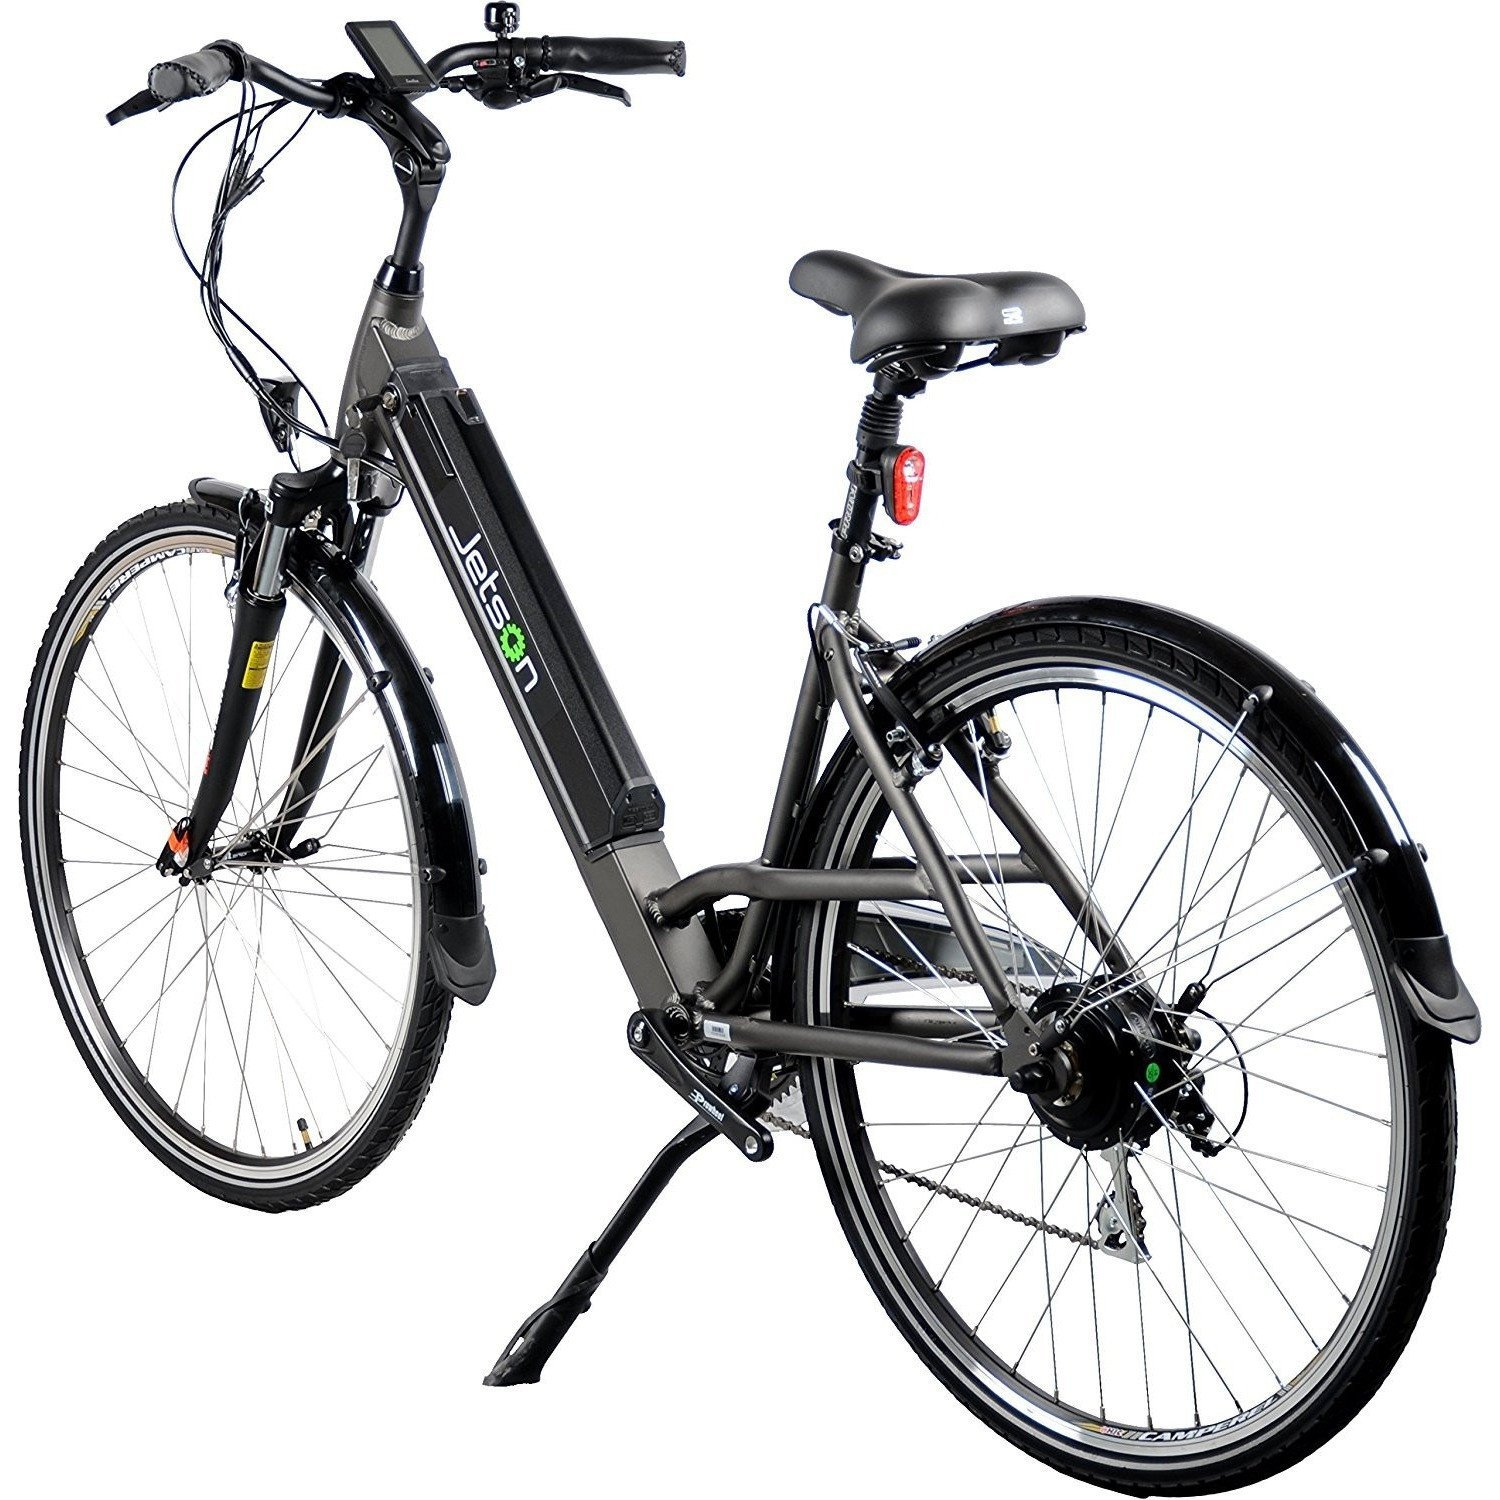 Jetson Rose 36v Electric City Bike Are You Looking For The